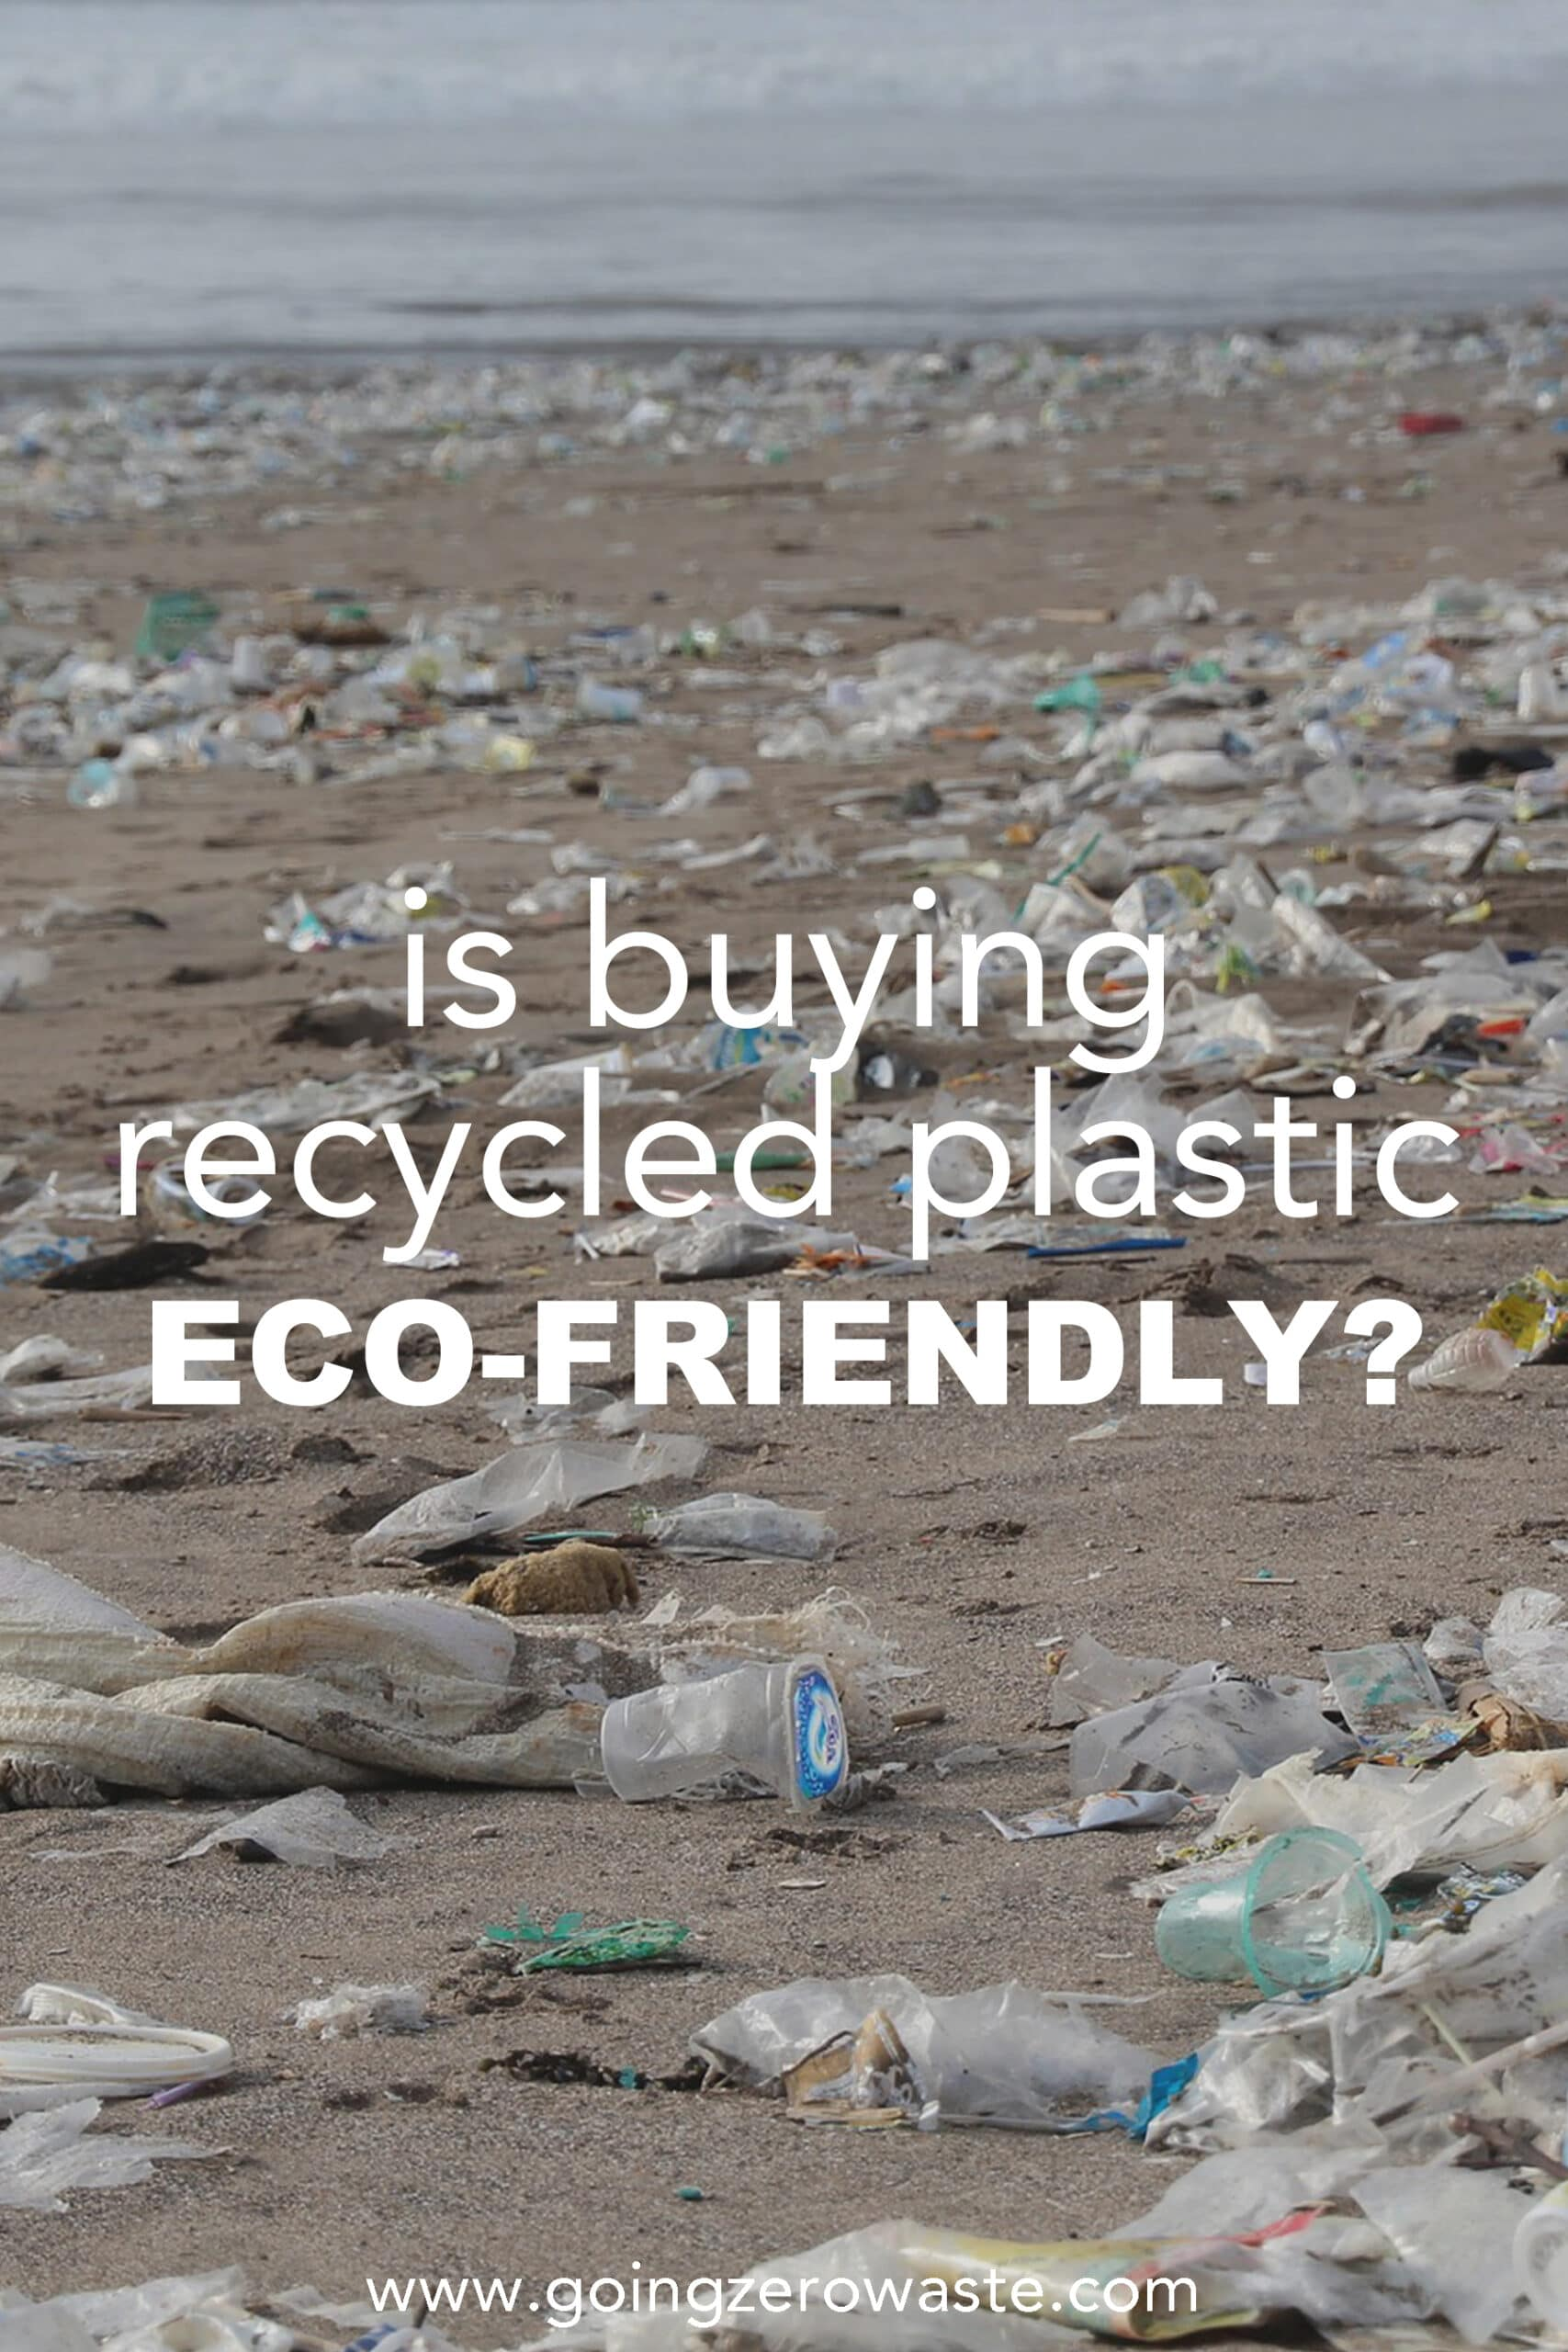 Is Buying Recycled Plastic Eco-Friendly?